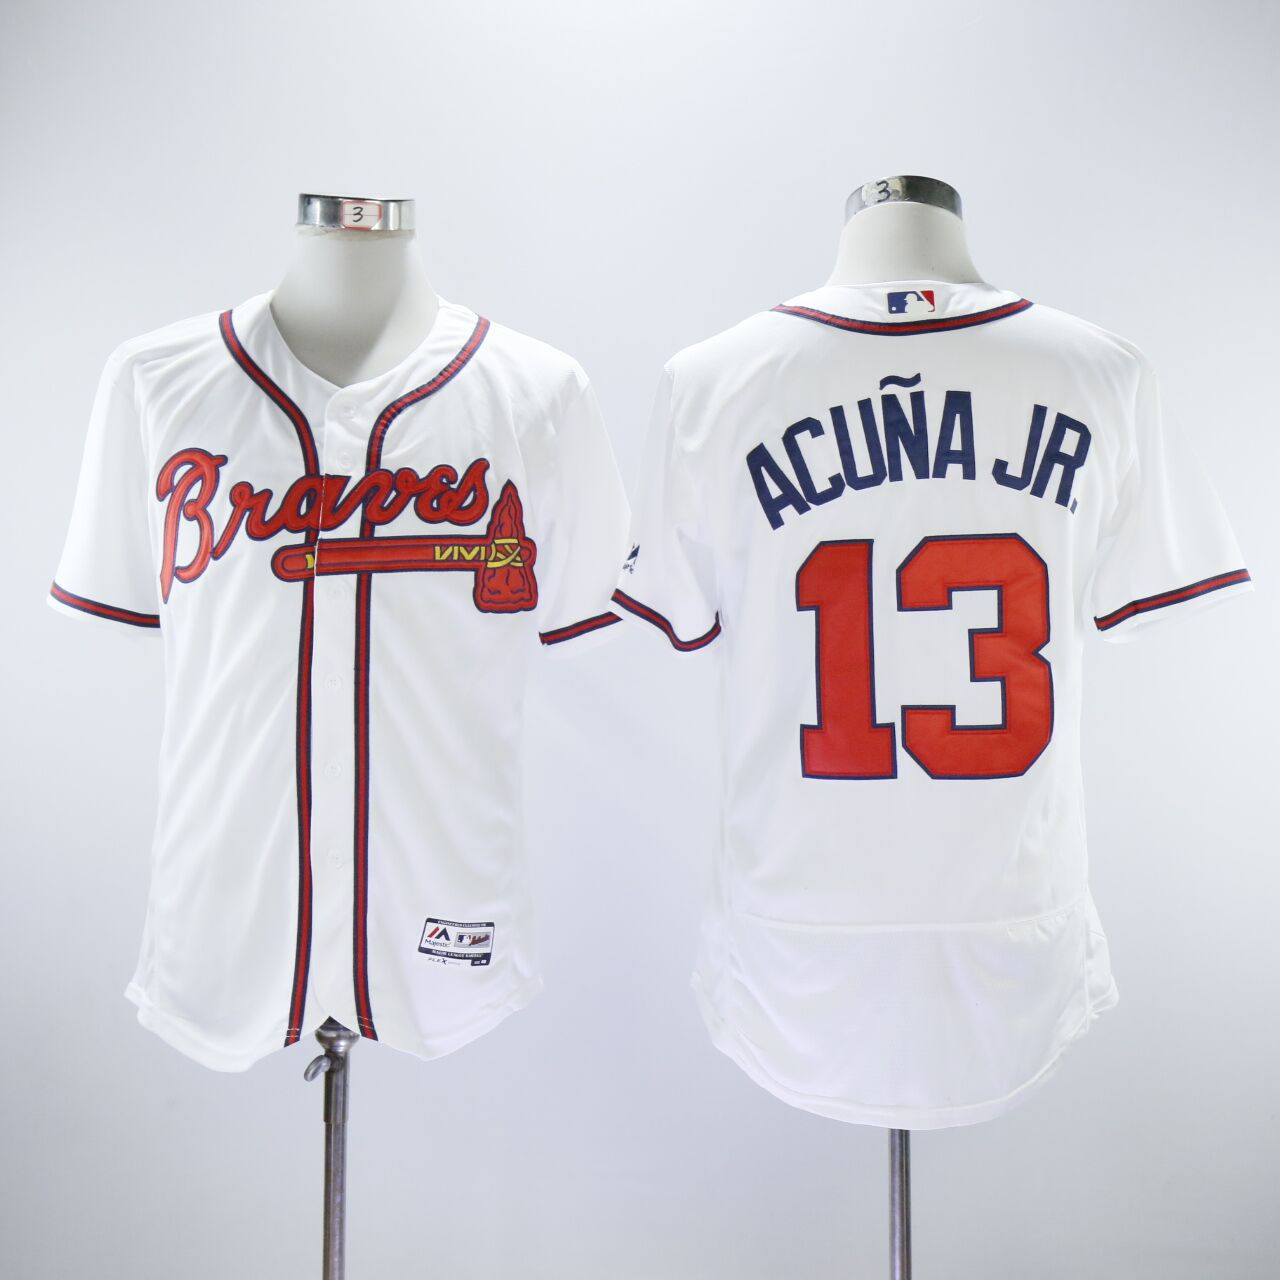 Braves 13 Ronald Acuna Jr. White Flexbase Jersey